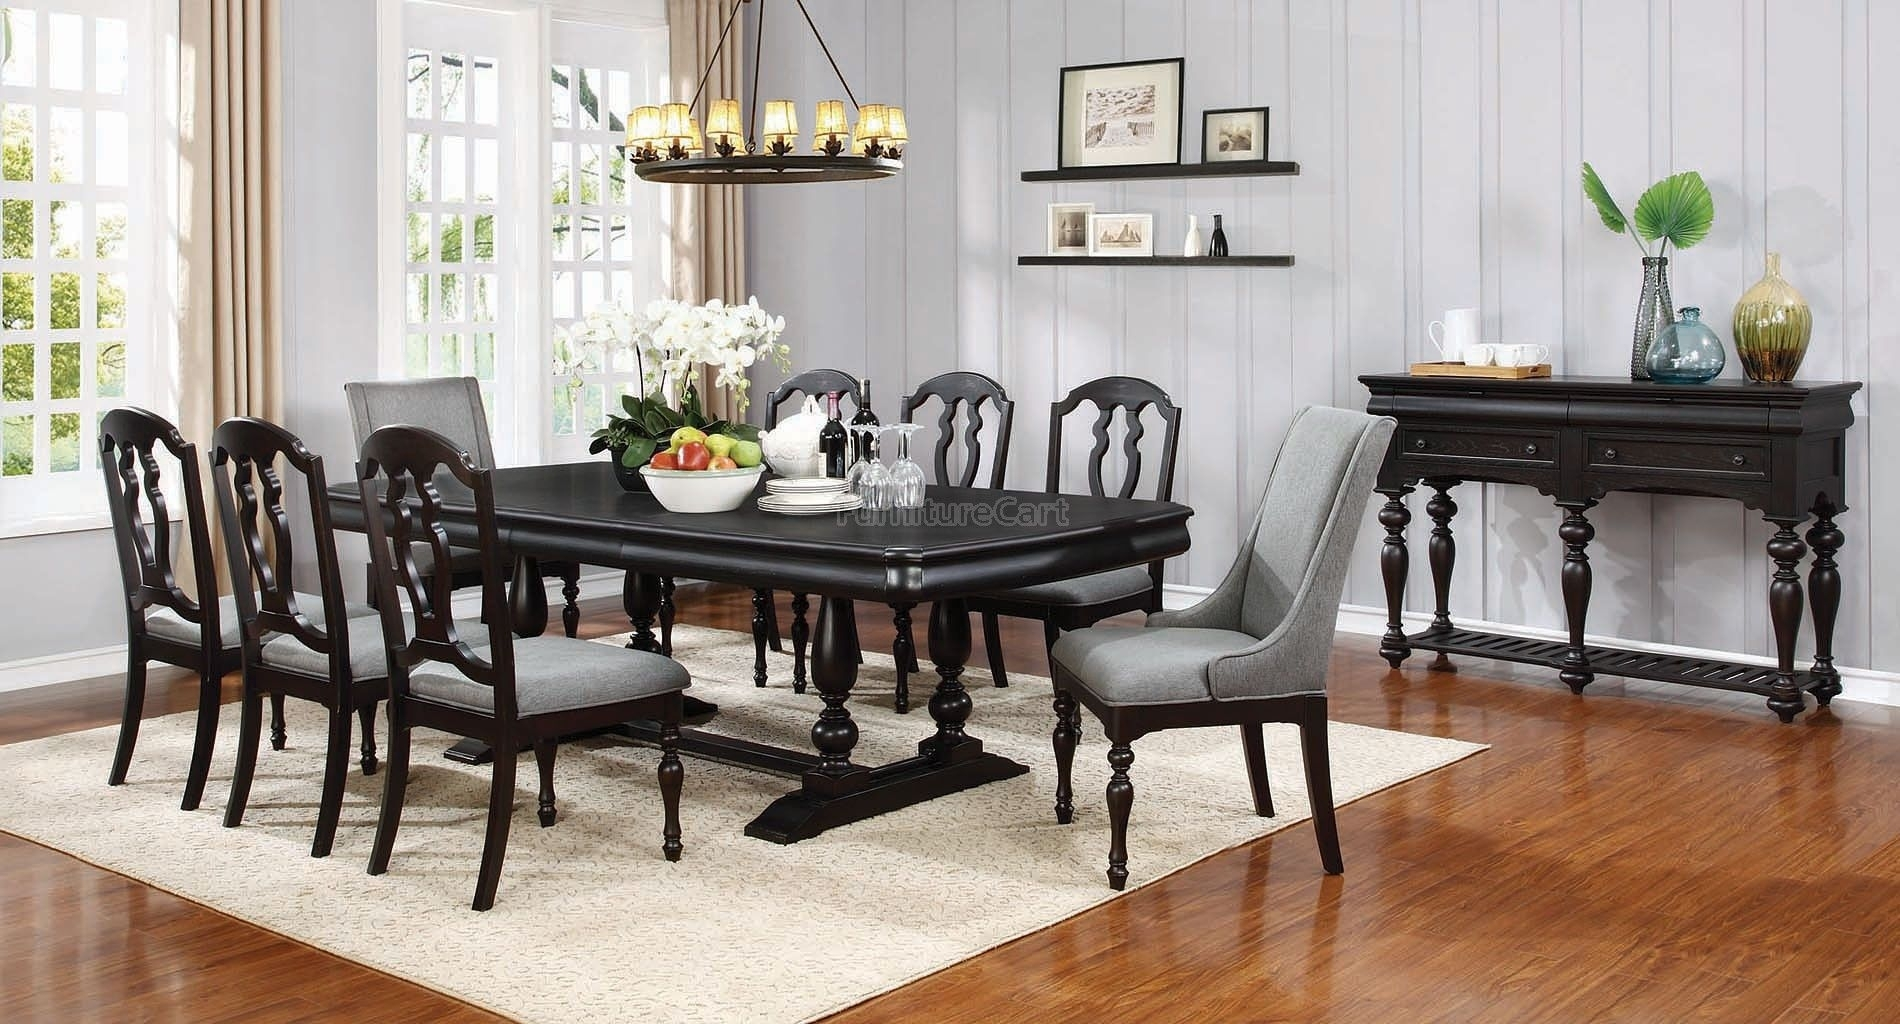 Leon Dining Room Set | Home Ideas | Pinterest | Dining Room Sets With Regard To Most Popular Leon 7 Piece Dining Sets (View 2 of 20)